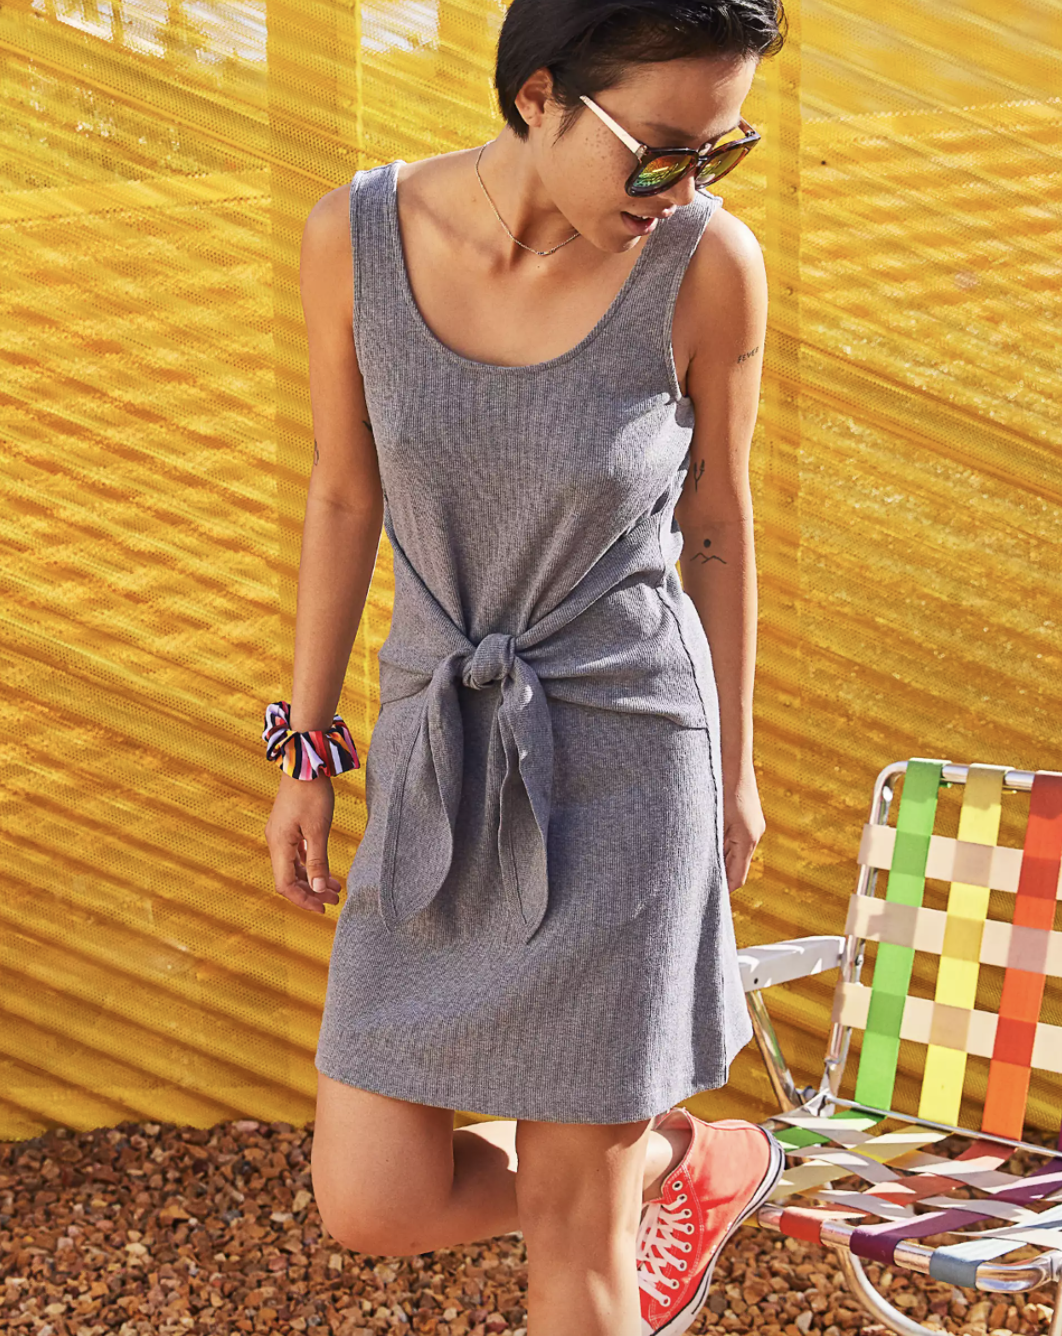 A model wearing the knit tie dress with sneakers and sunglasses